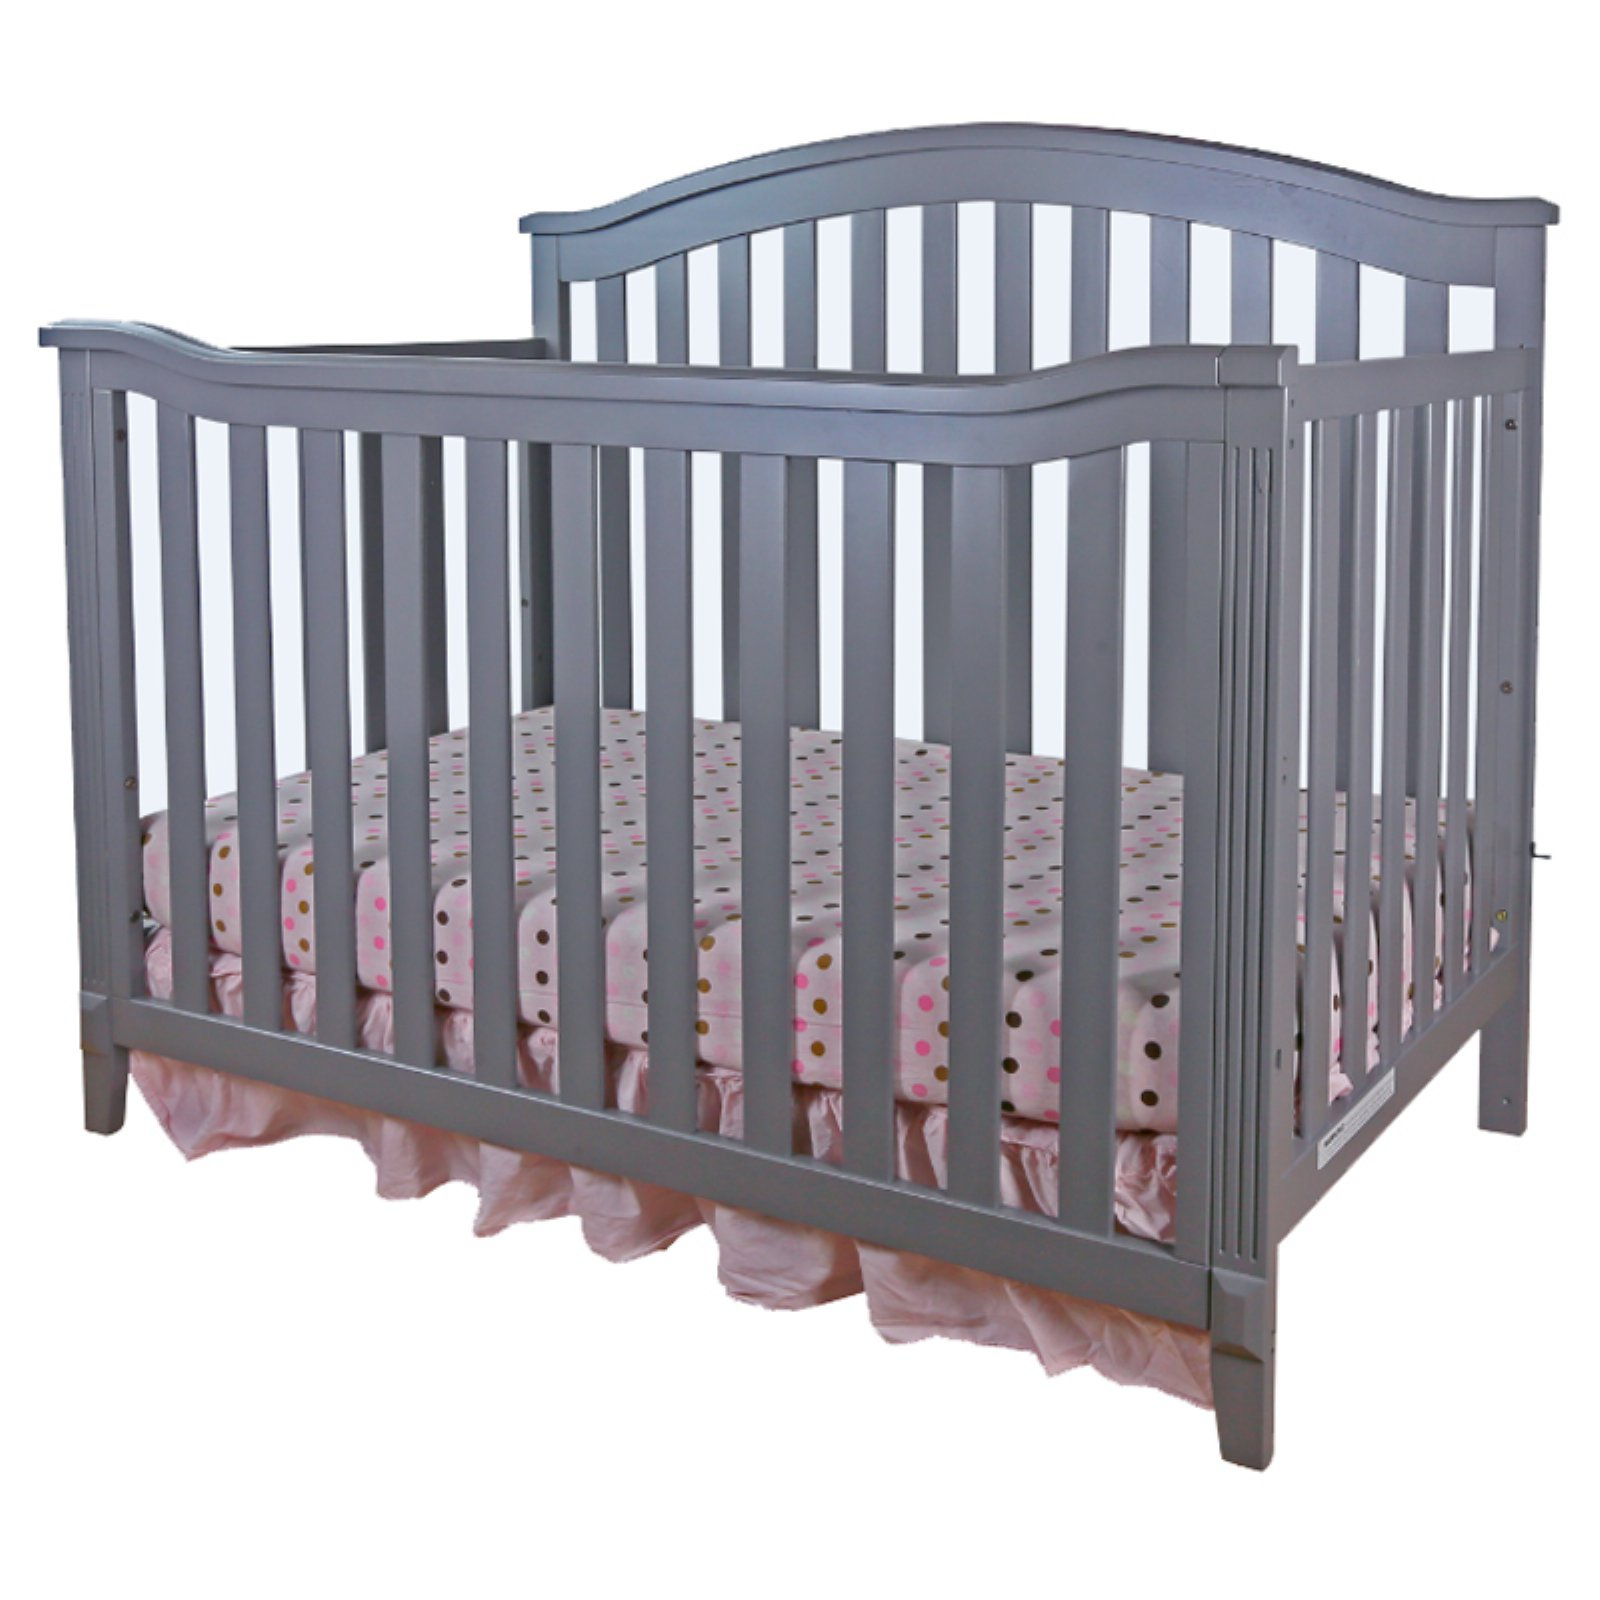 Crib Guard Rail Kali 4 In 1 Convertible Crib Gray Guardrail Is Not Included